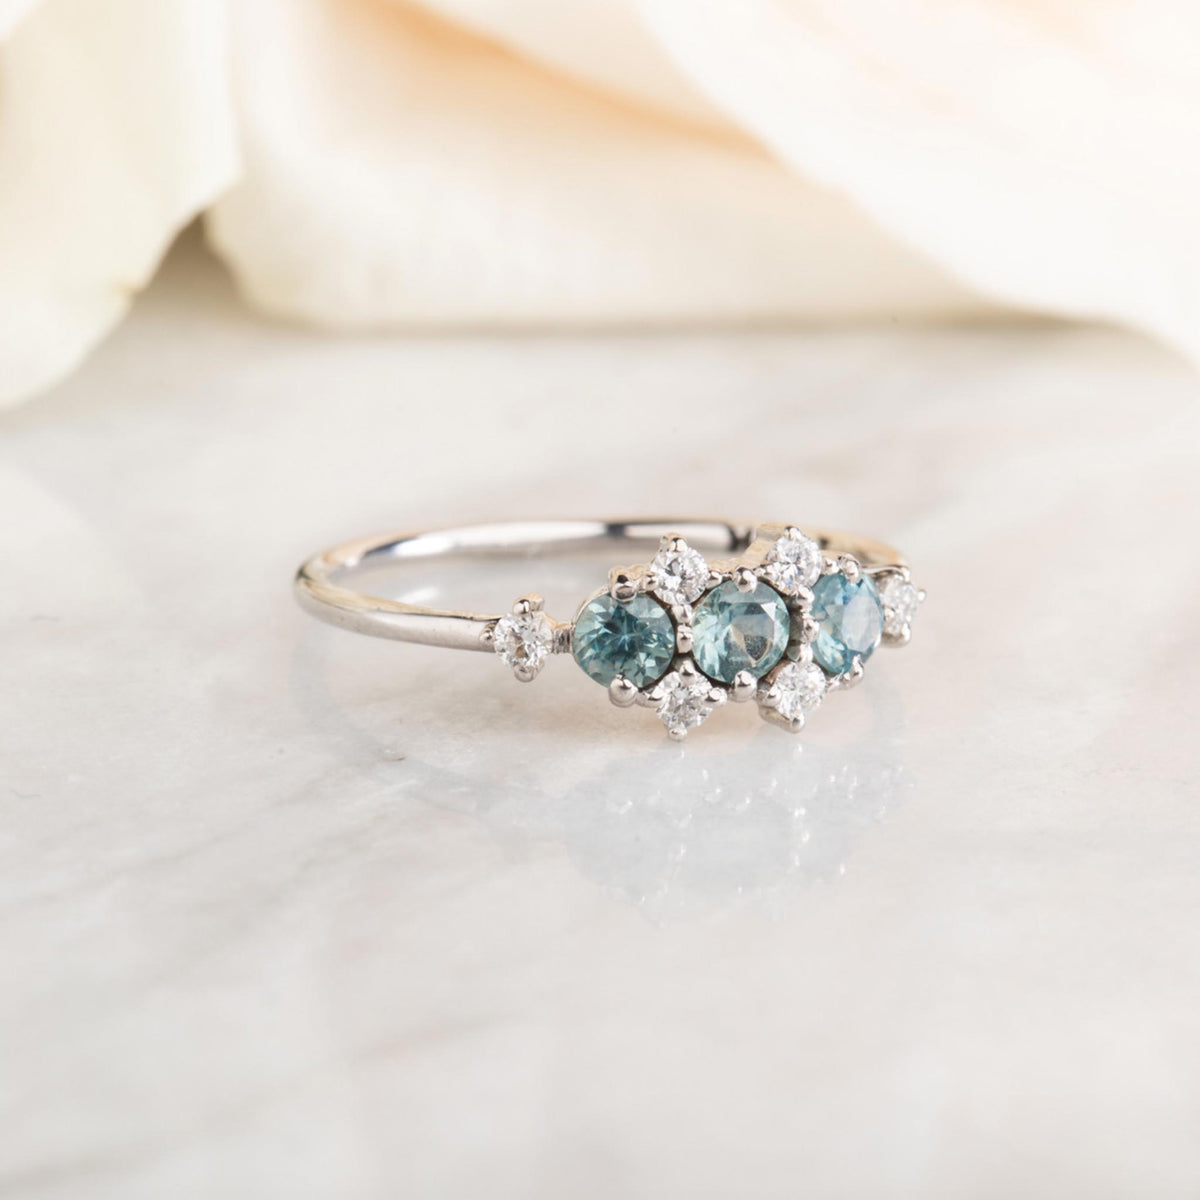 14kt White Gold Teal Sapphire & Diamond Fantasy Ring